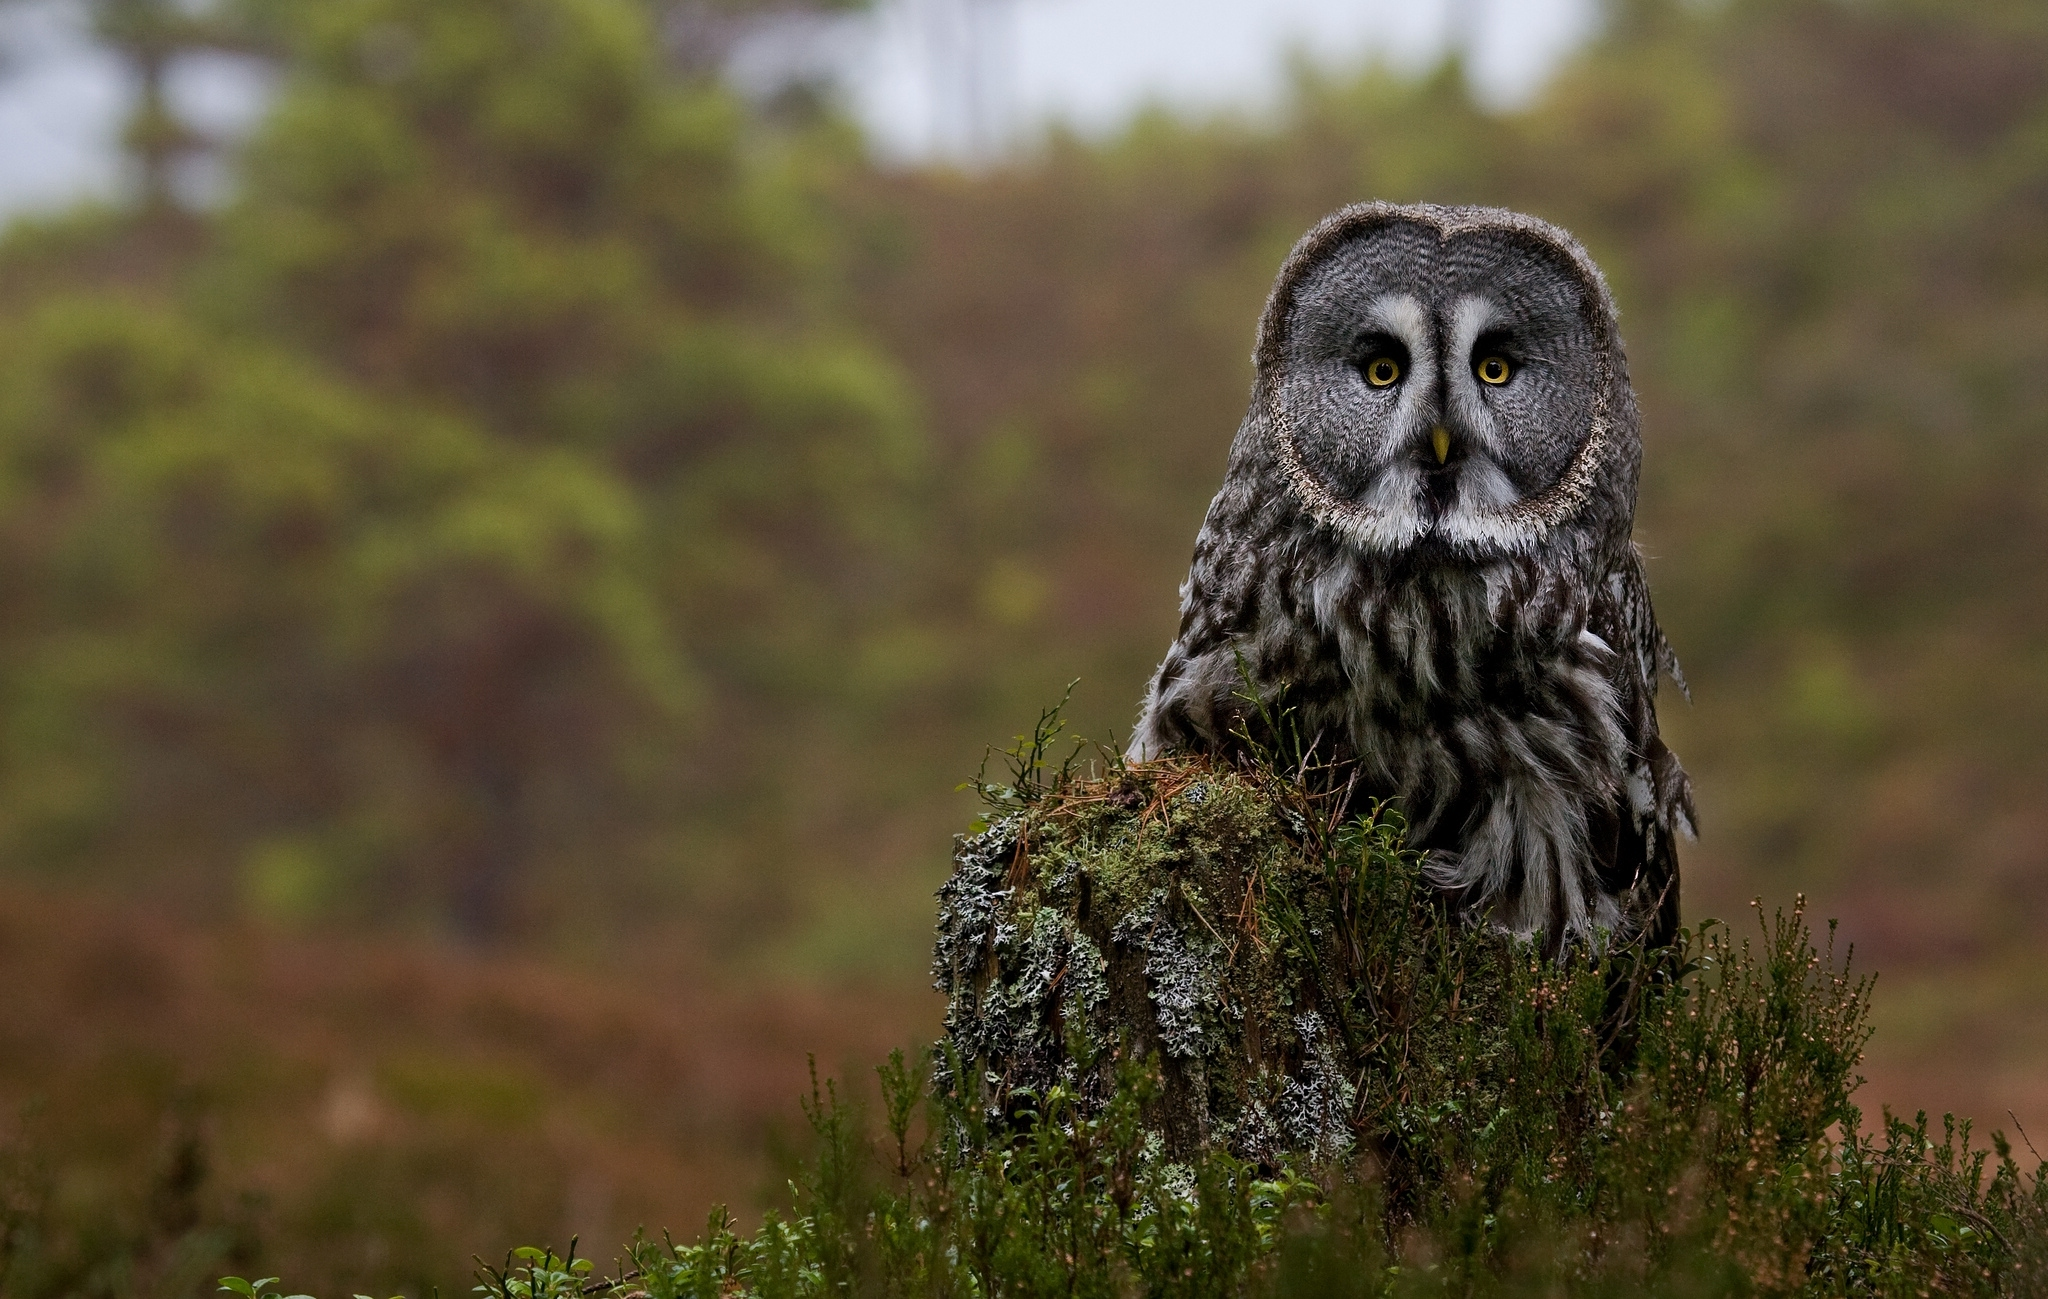 151926 Screensavers and Wallpapers Owl for phone. Download Animals, Great Gray Owl, Bearded Obscure, Owl, Predator, Forest, Stump pictures for free